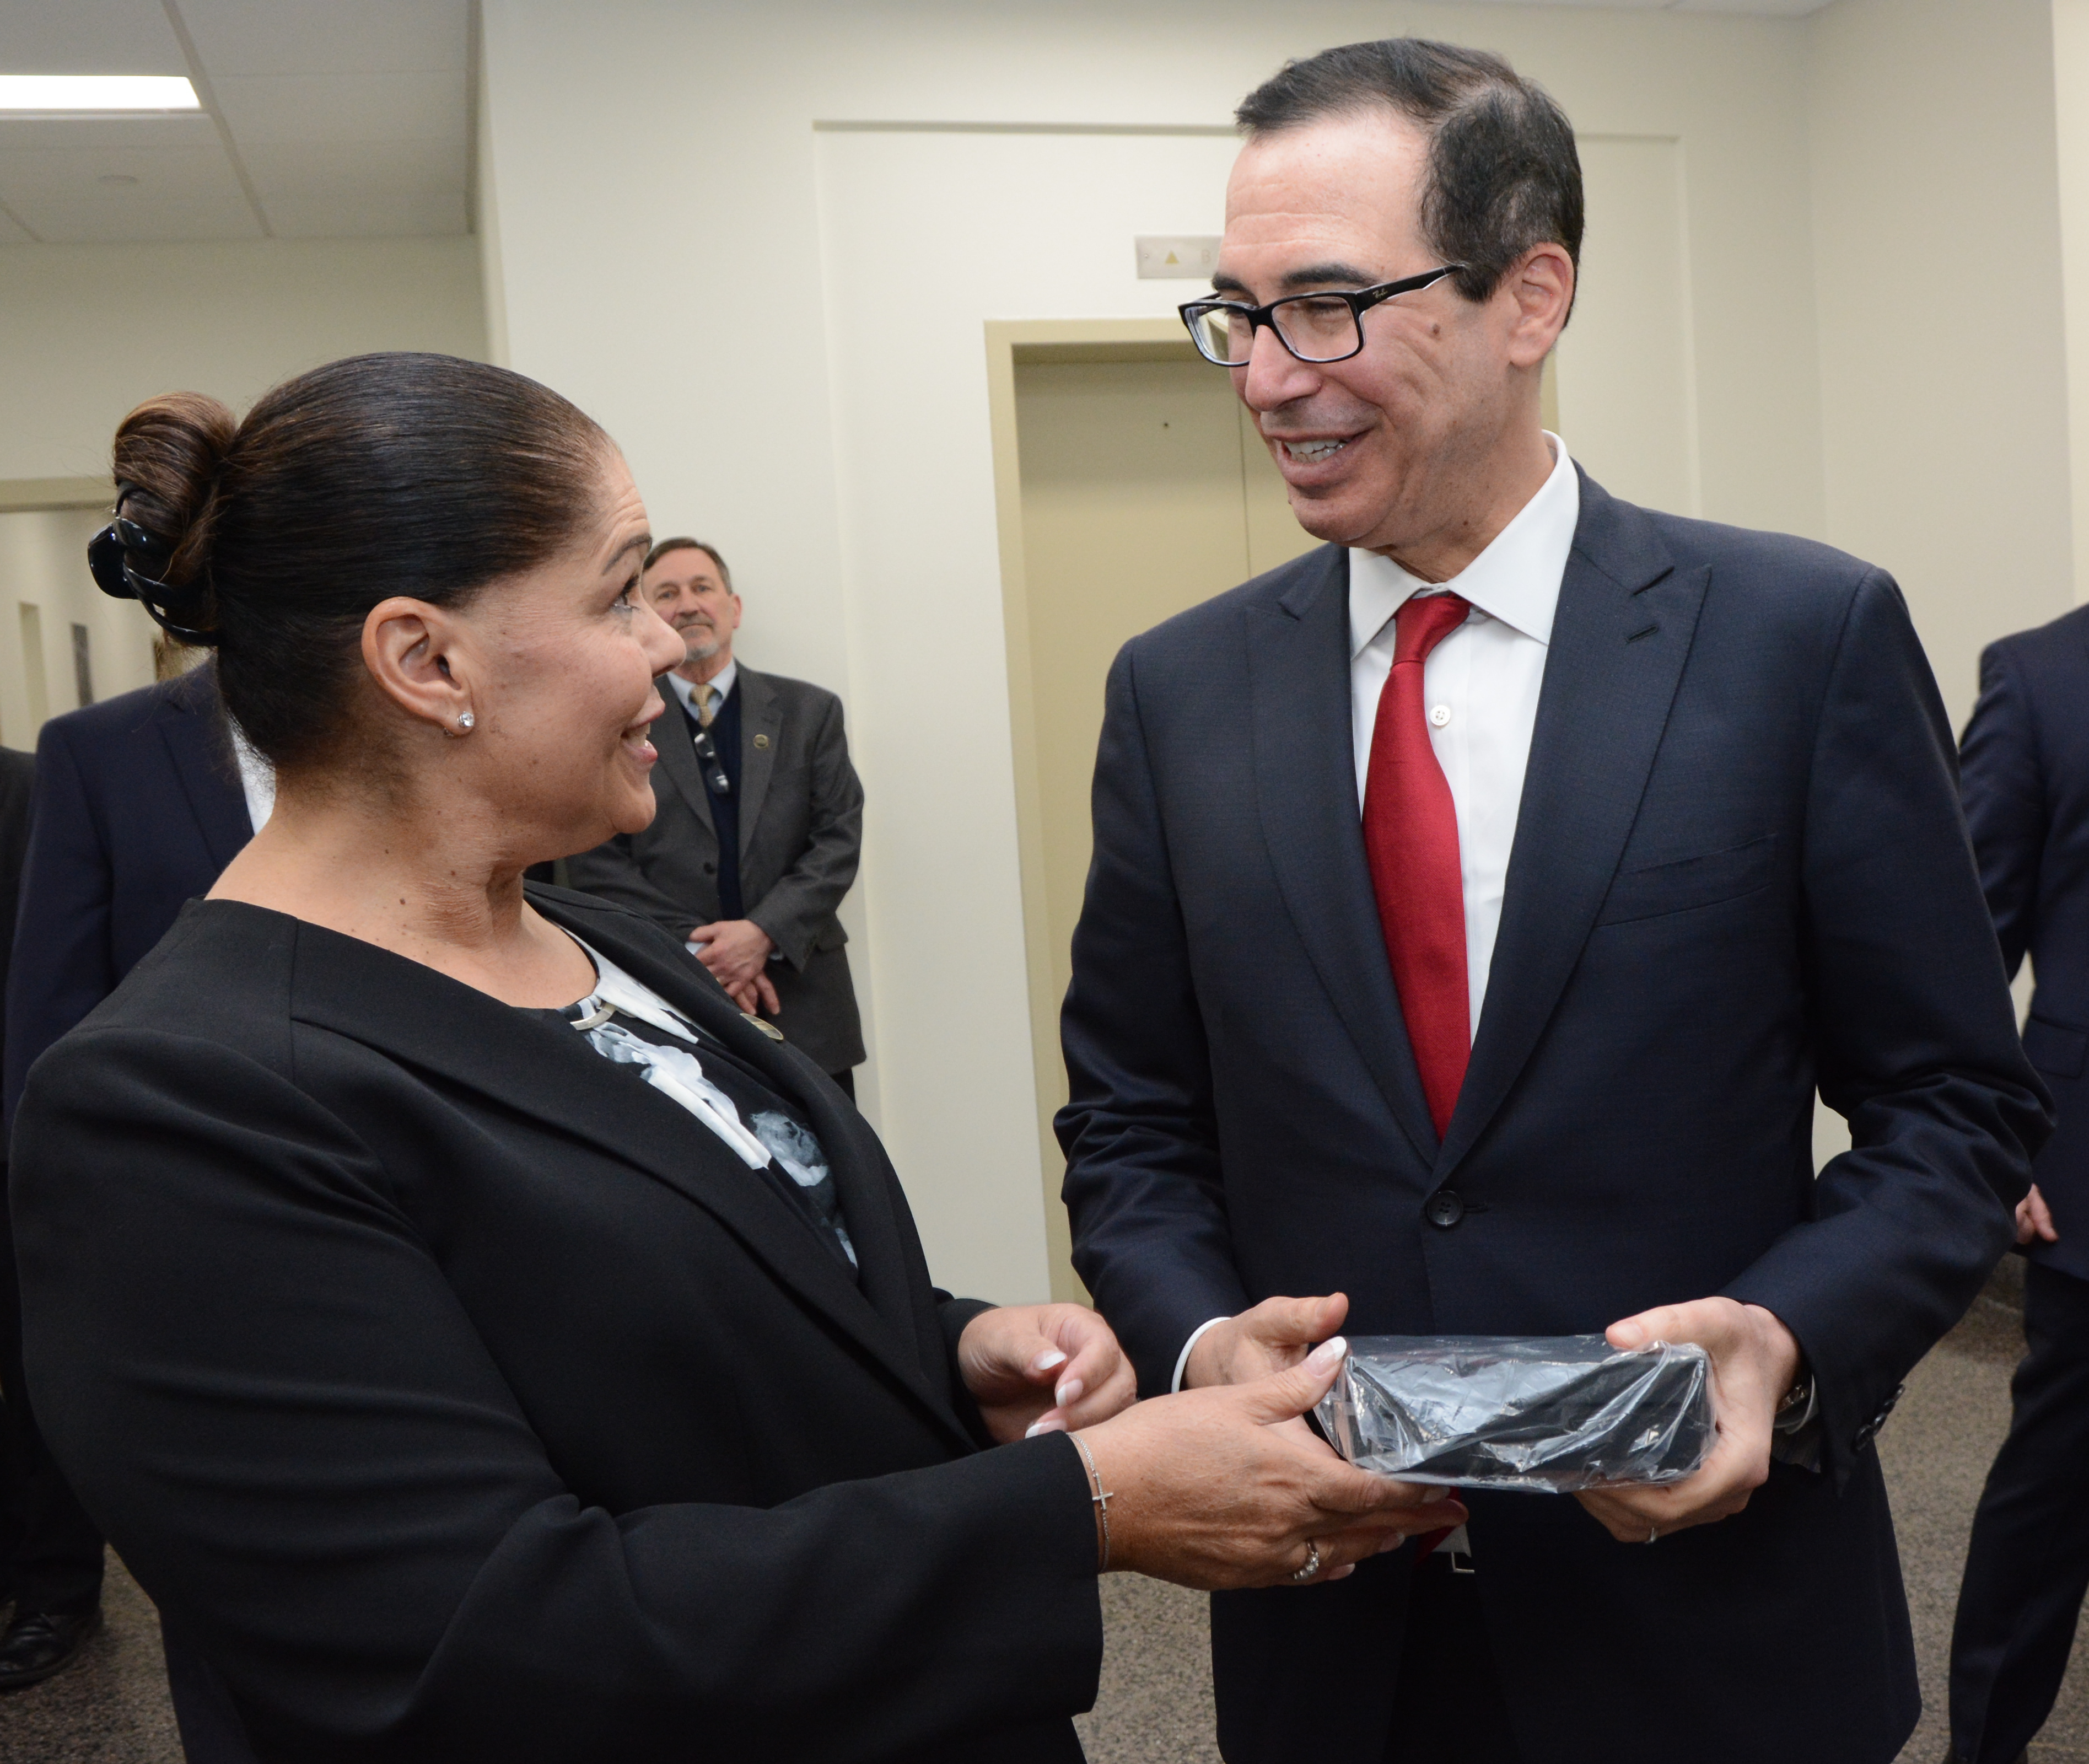 U.S. Mint Acting Superintendent (Philadelphia facility) Laurie Johnson presents Treasury Secretary Steven Mnuchin with the World War I Centennial 2018 Proof Silver Dollar he struck during a tour of the numismatic room at the U.S. Mint facility in Philadel